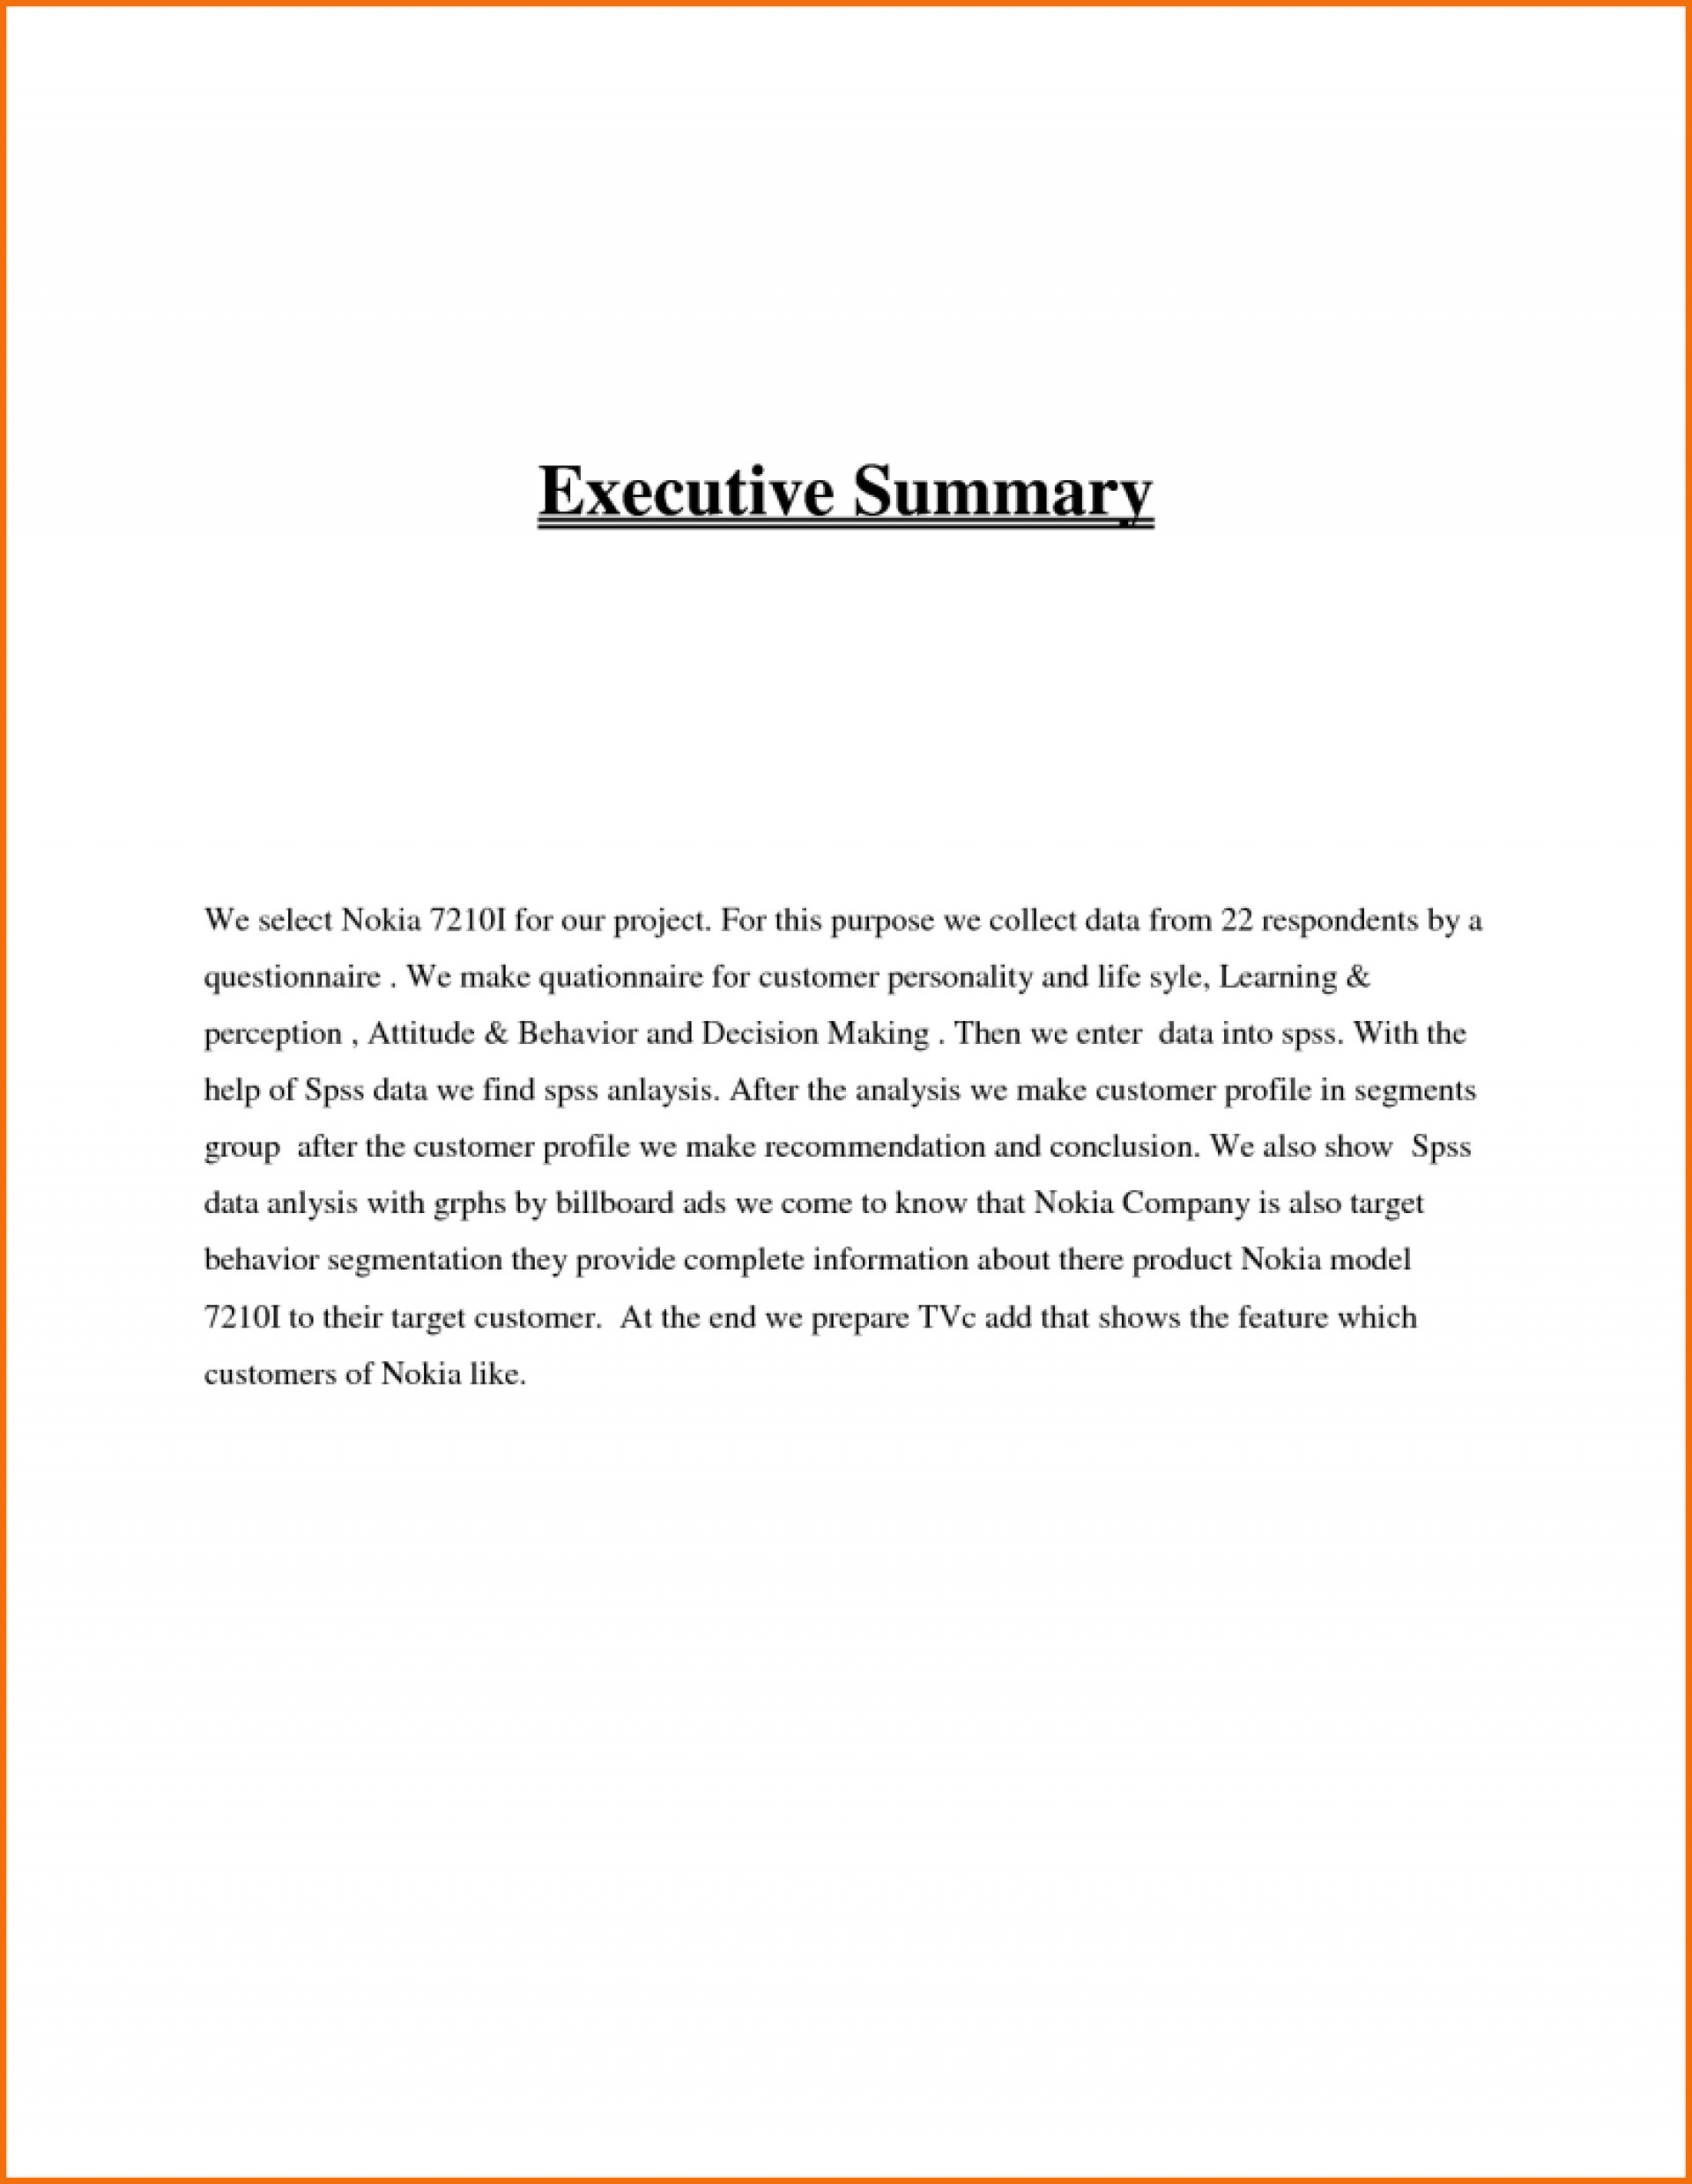 008 Example Executive Summary Format Resize8101046 Examples Of Research Exceptional Paper Findings In Sample Writing 1920